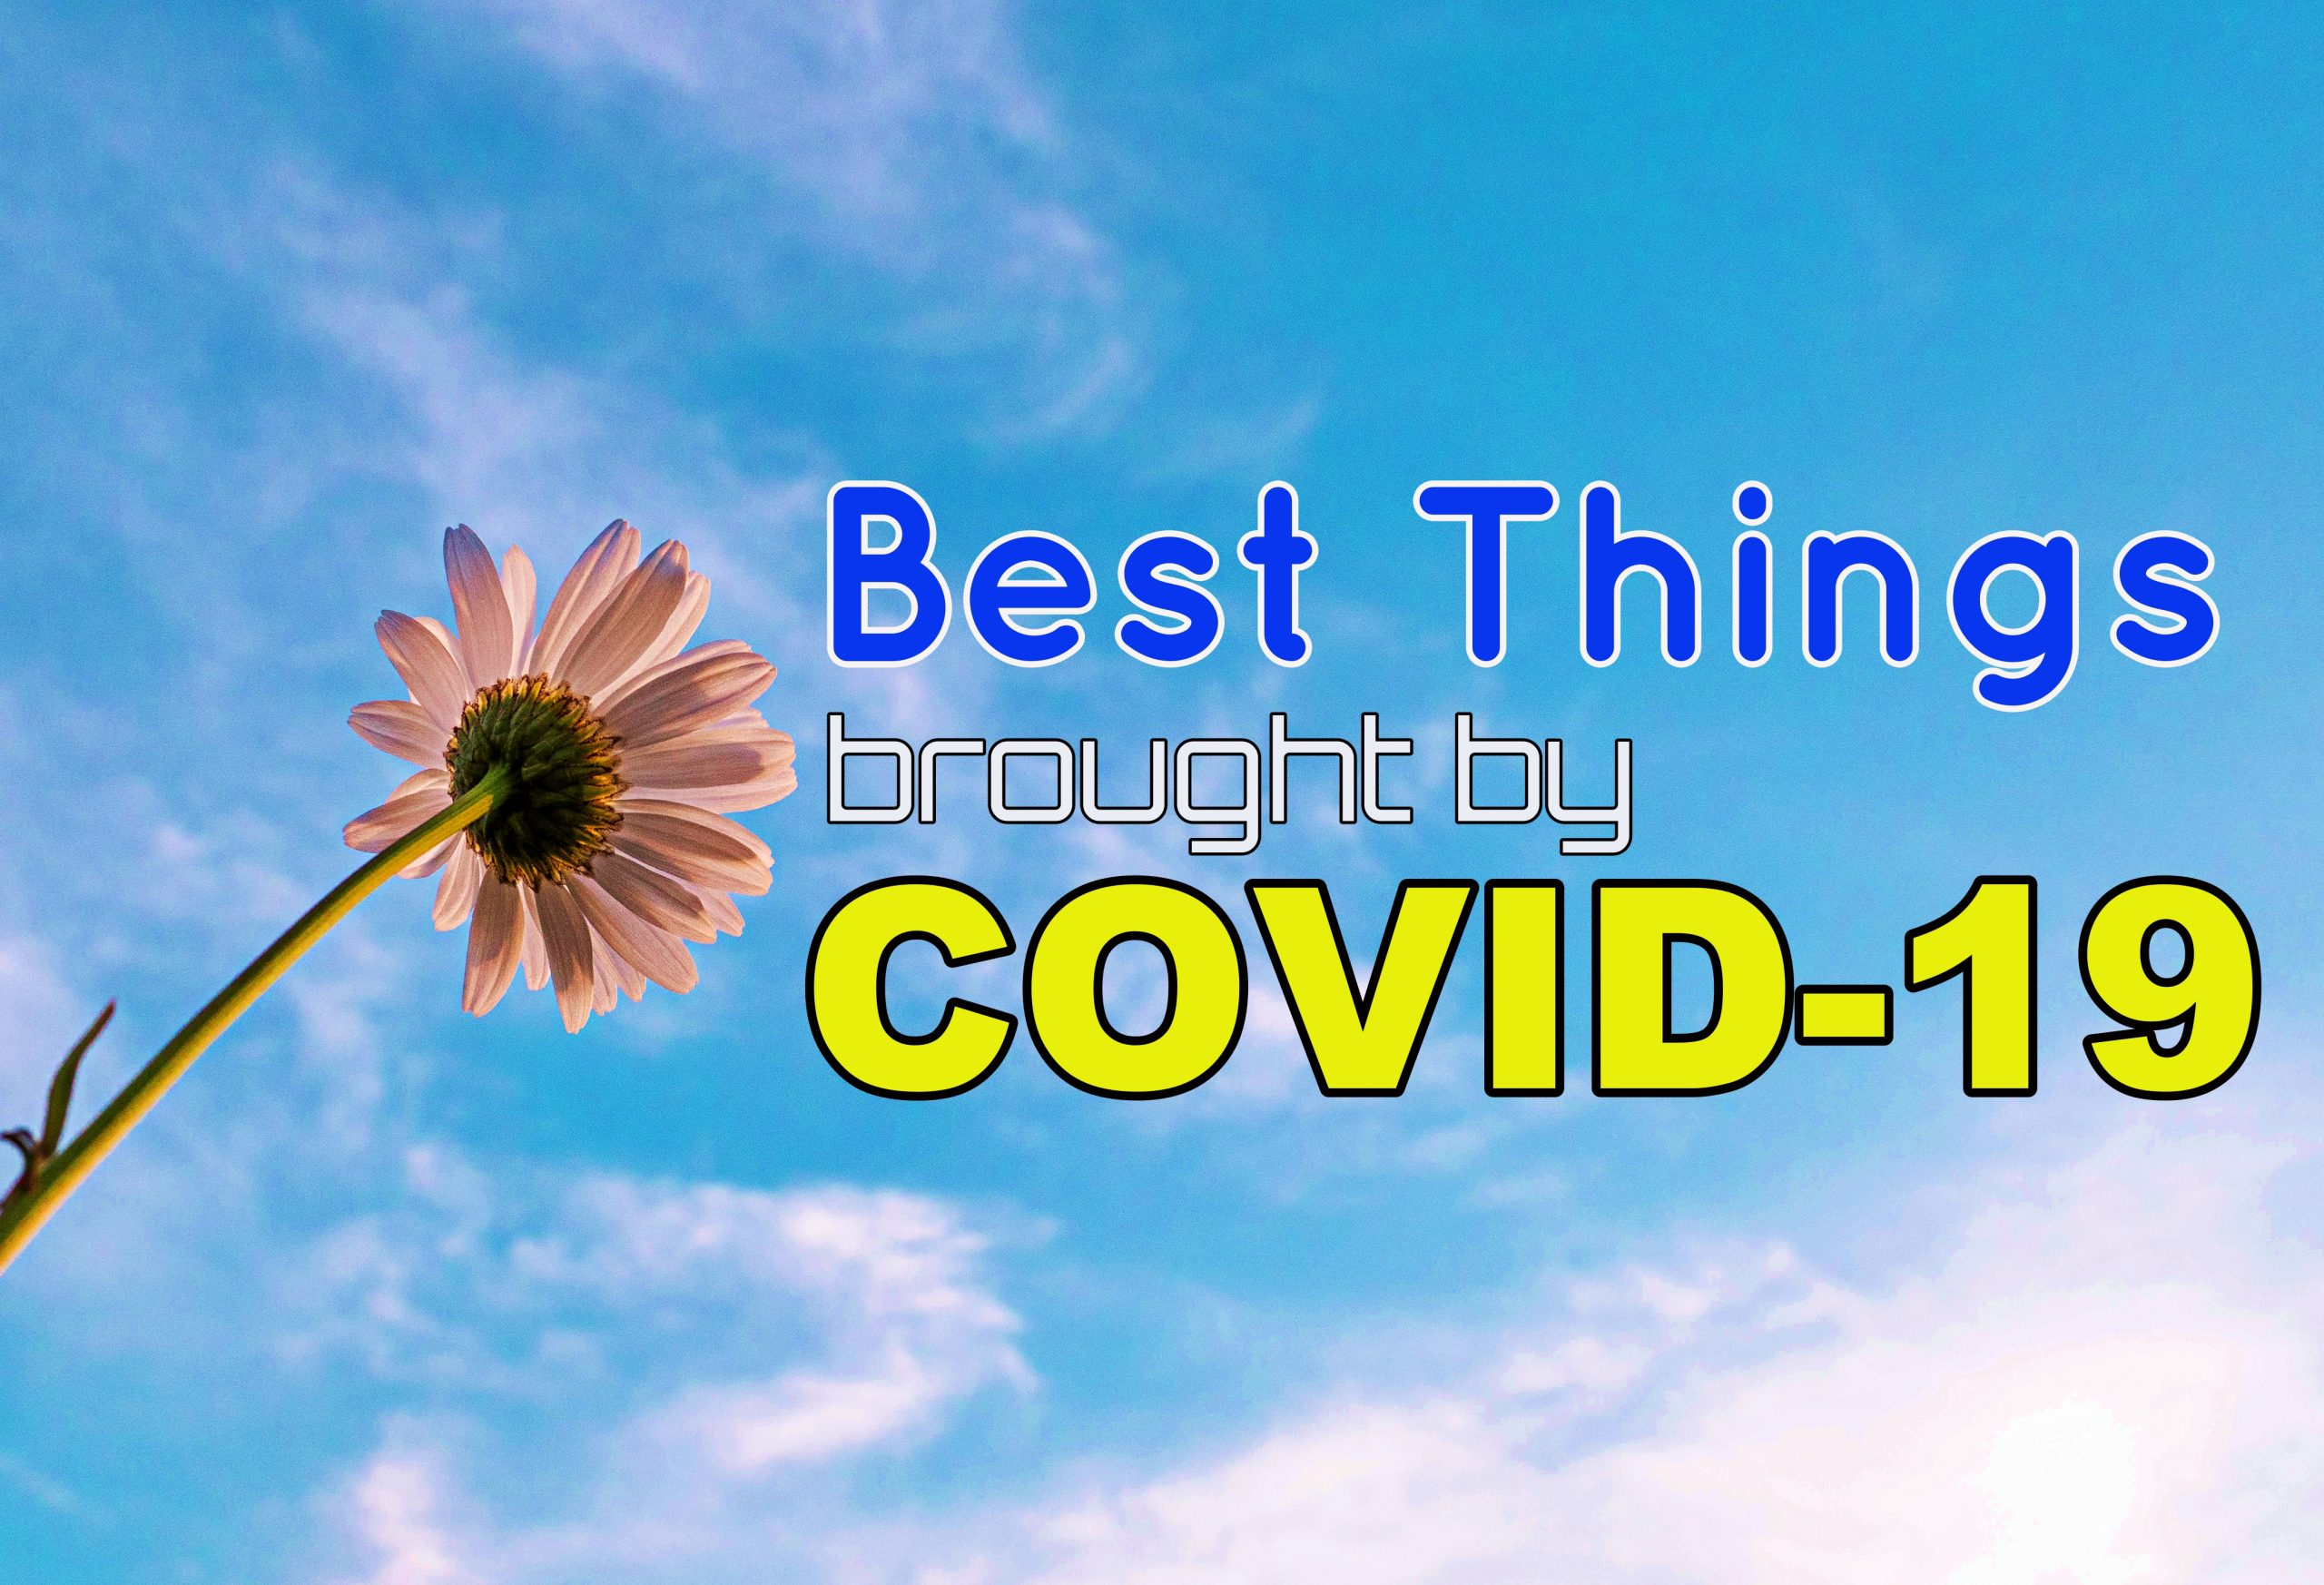 Best Things brought by Covid-19